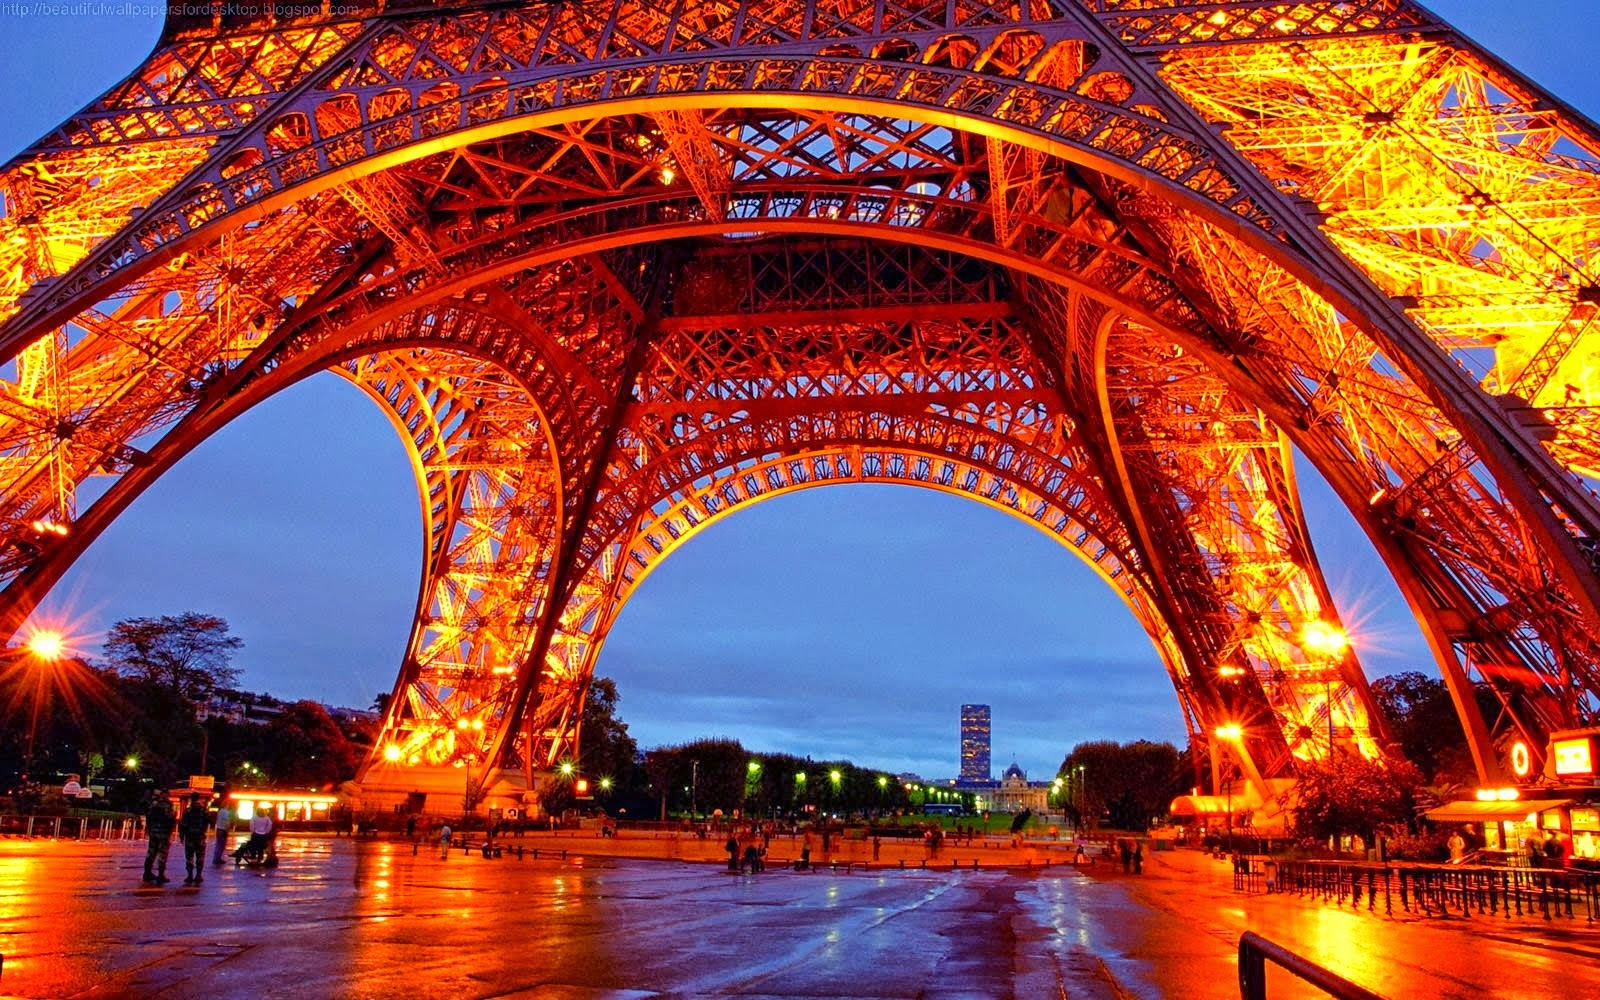 Eiffel Tower Latest 2015 Wallpapers Latest Wallpapers